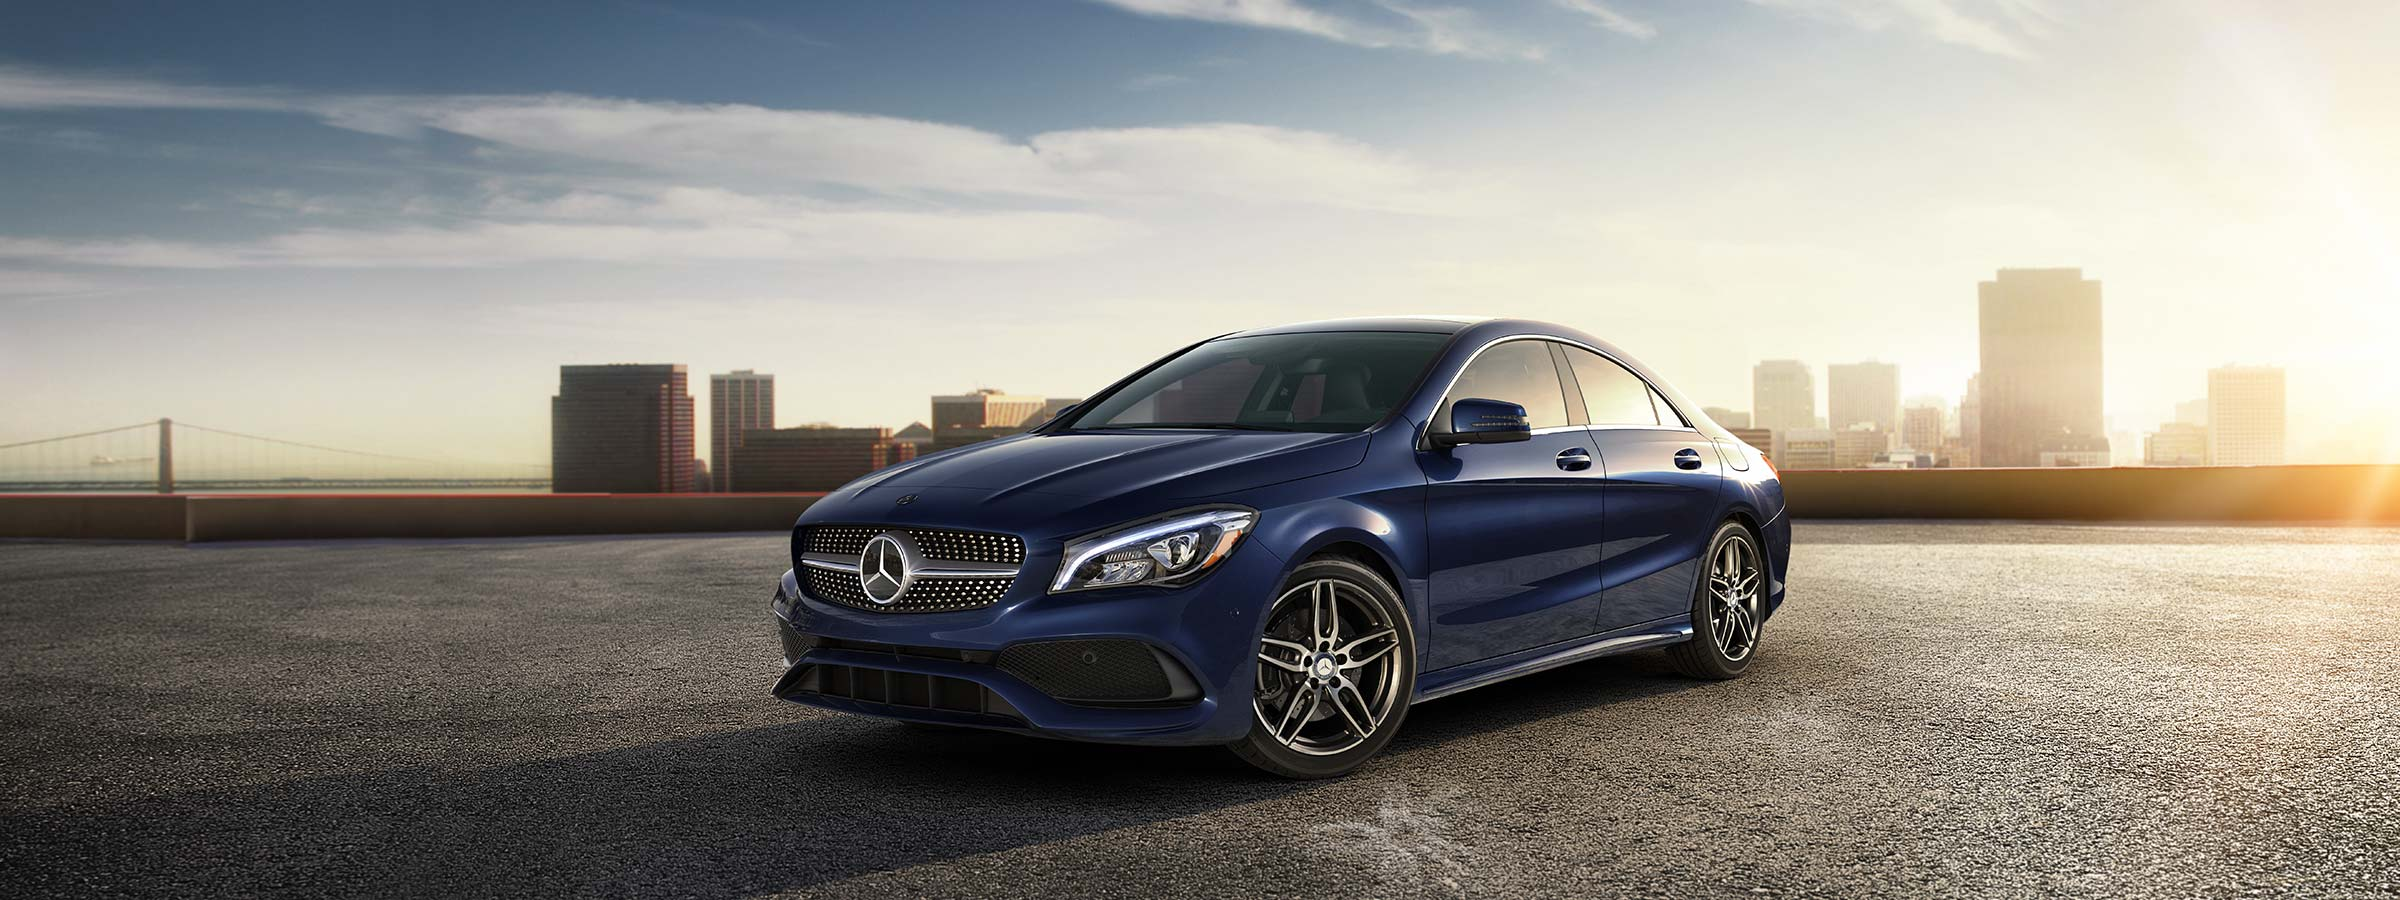 2019 Cla Coupe Mercedes Benz